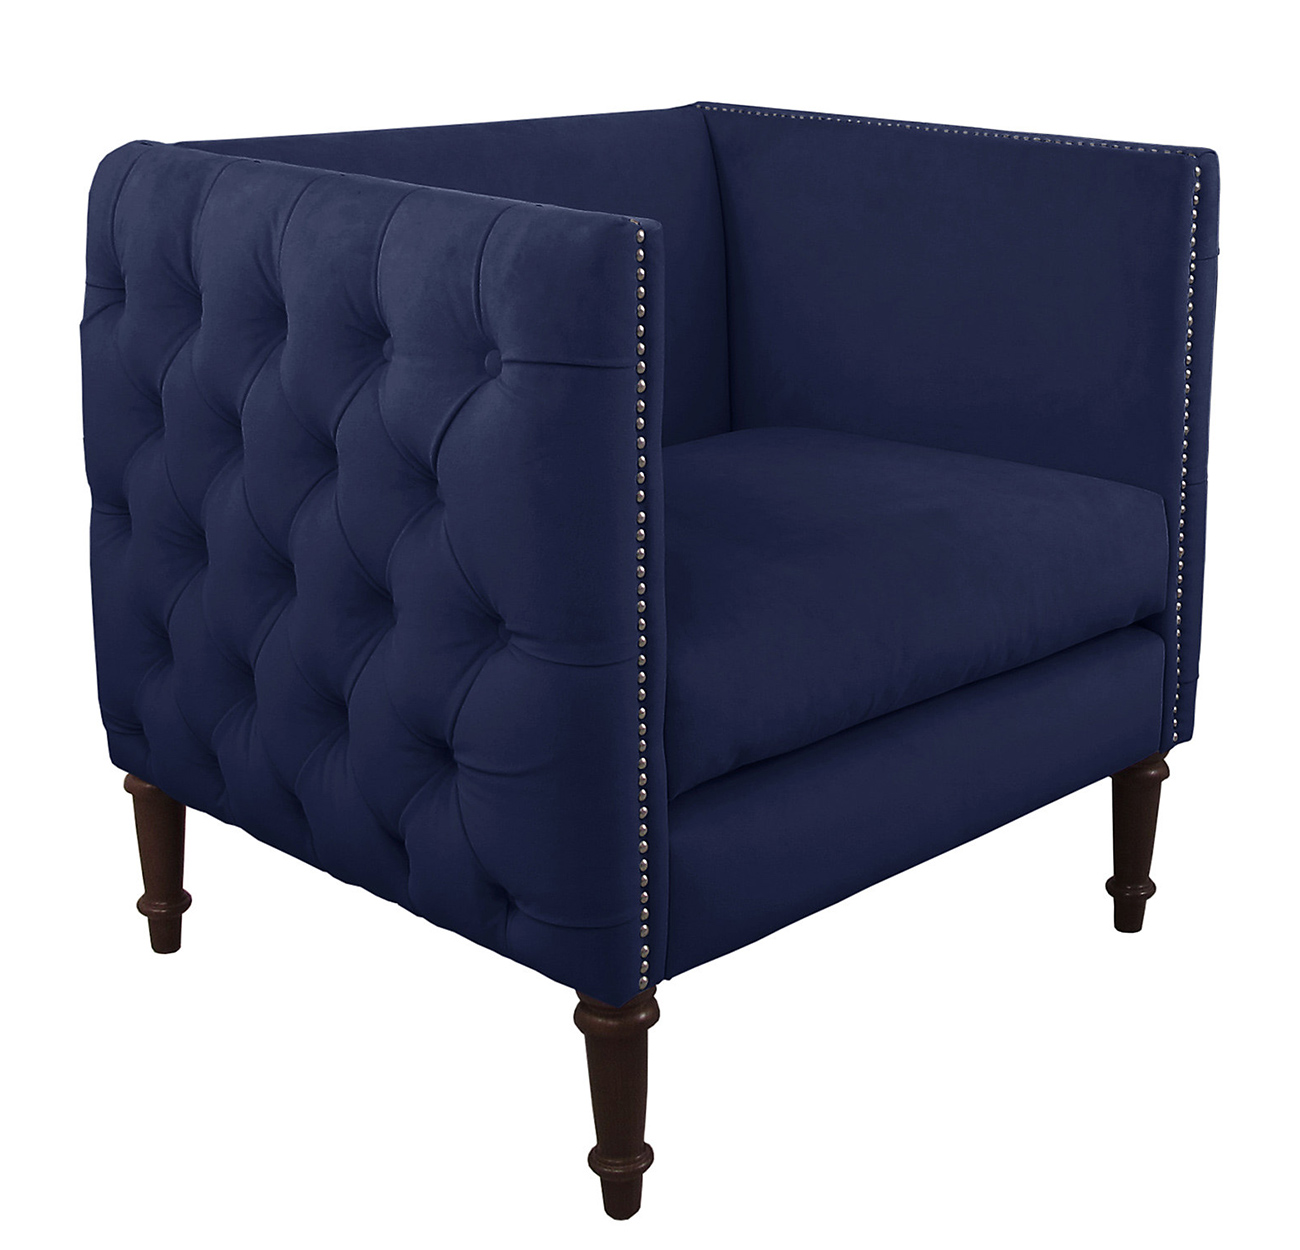 Blue Velvet Chair Navy Blue Living Room Ideas Adorable Home